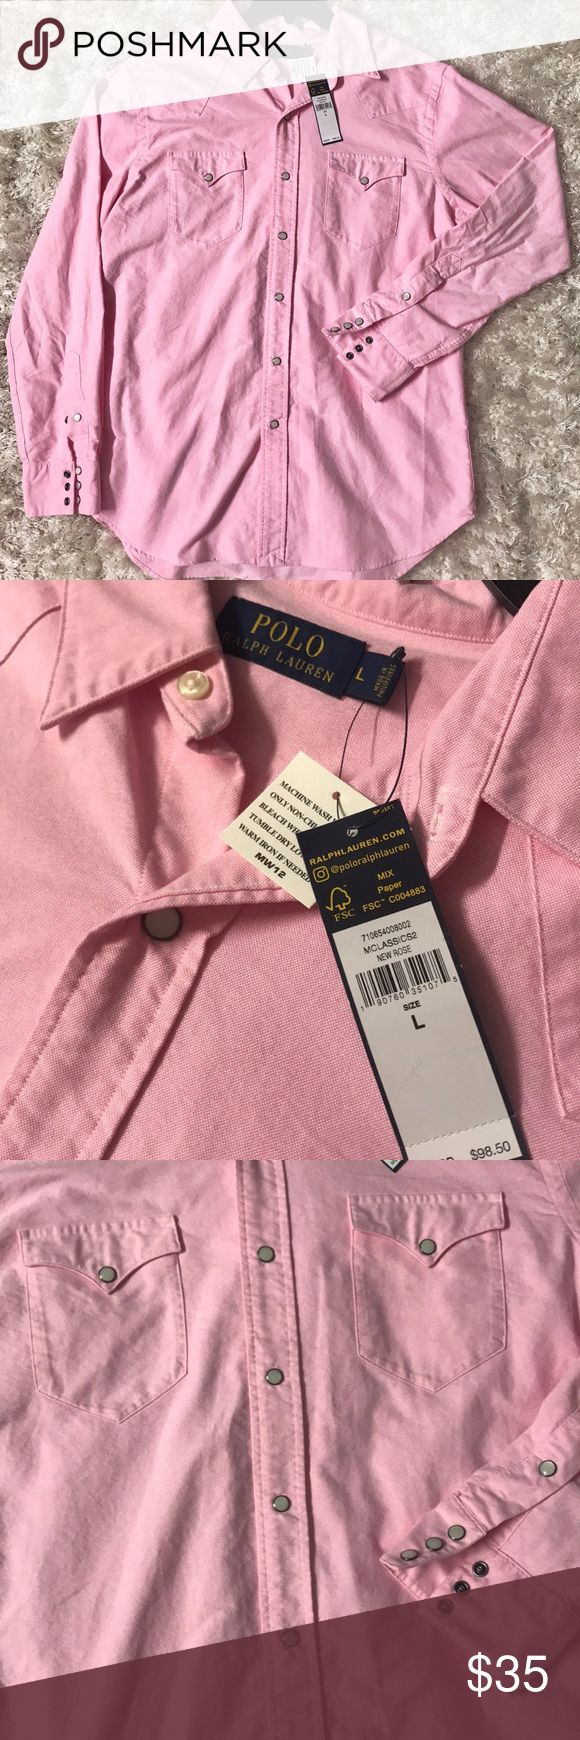 Ralph Lauren western style sport shirt Polo Ralph Lauren pink men's shirt. Size L. New with tags Polo by Ralph Lauren Shirts Casual Button Down Shirts